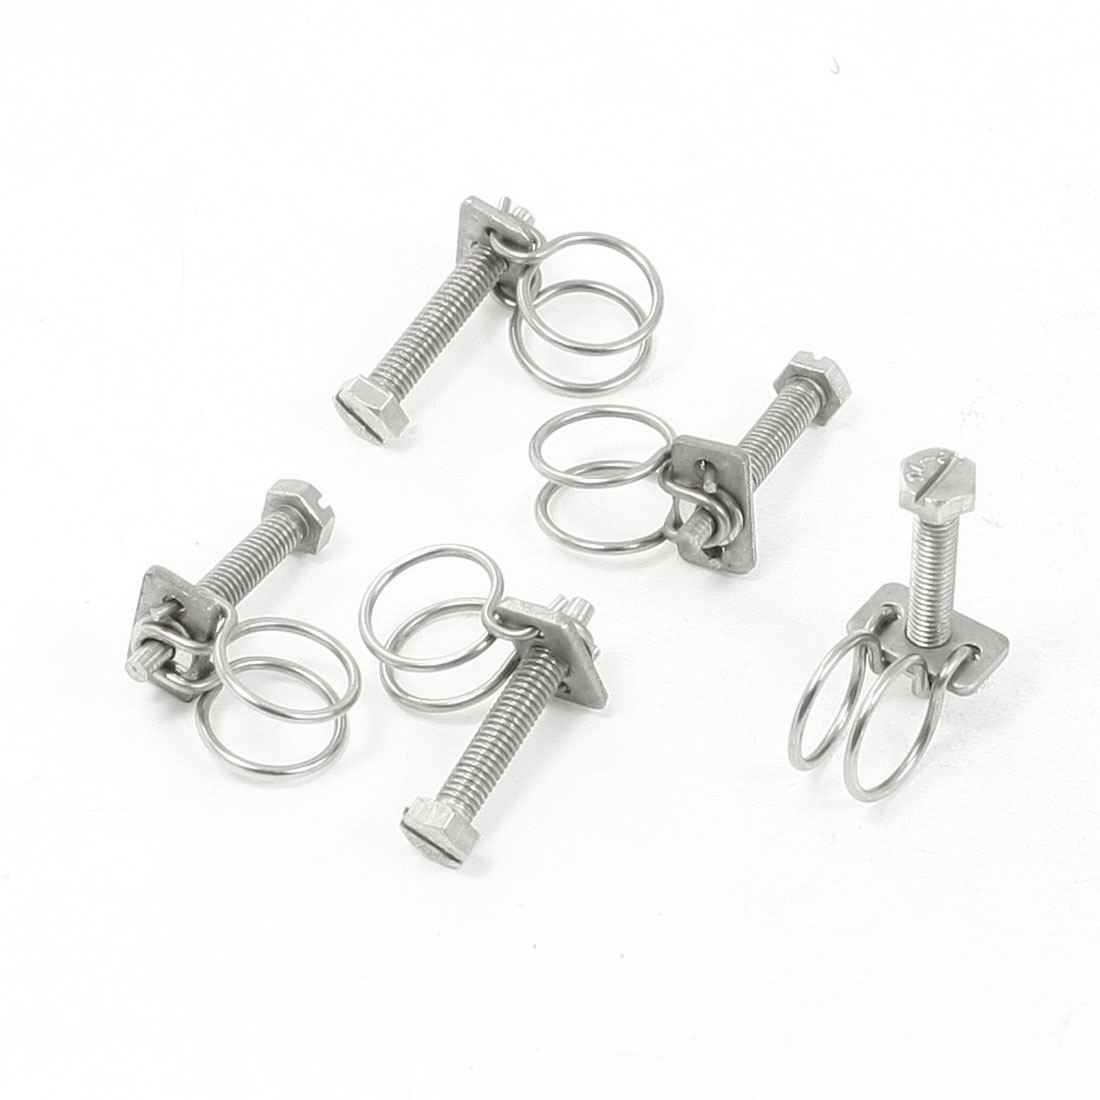 Universal Hardware Parts 13mm Dia Water Pipe Tube Hose Clamps 5 Pcs